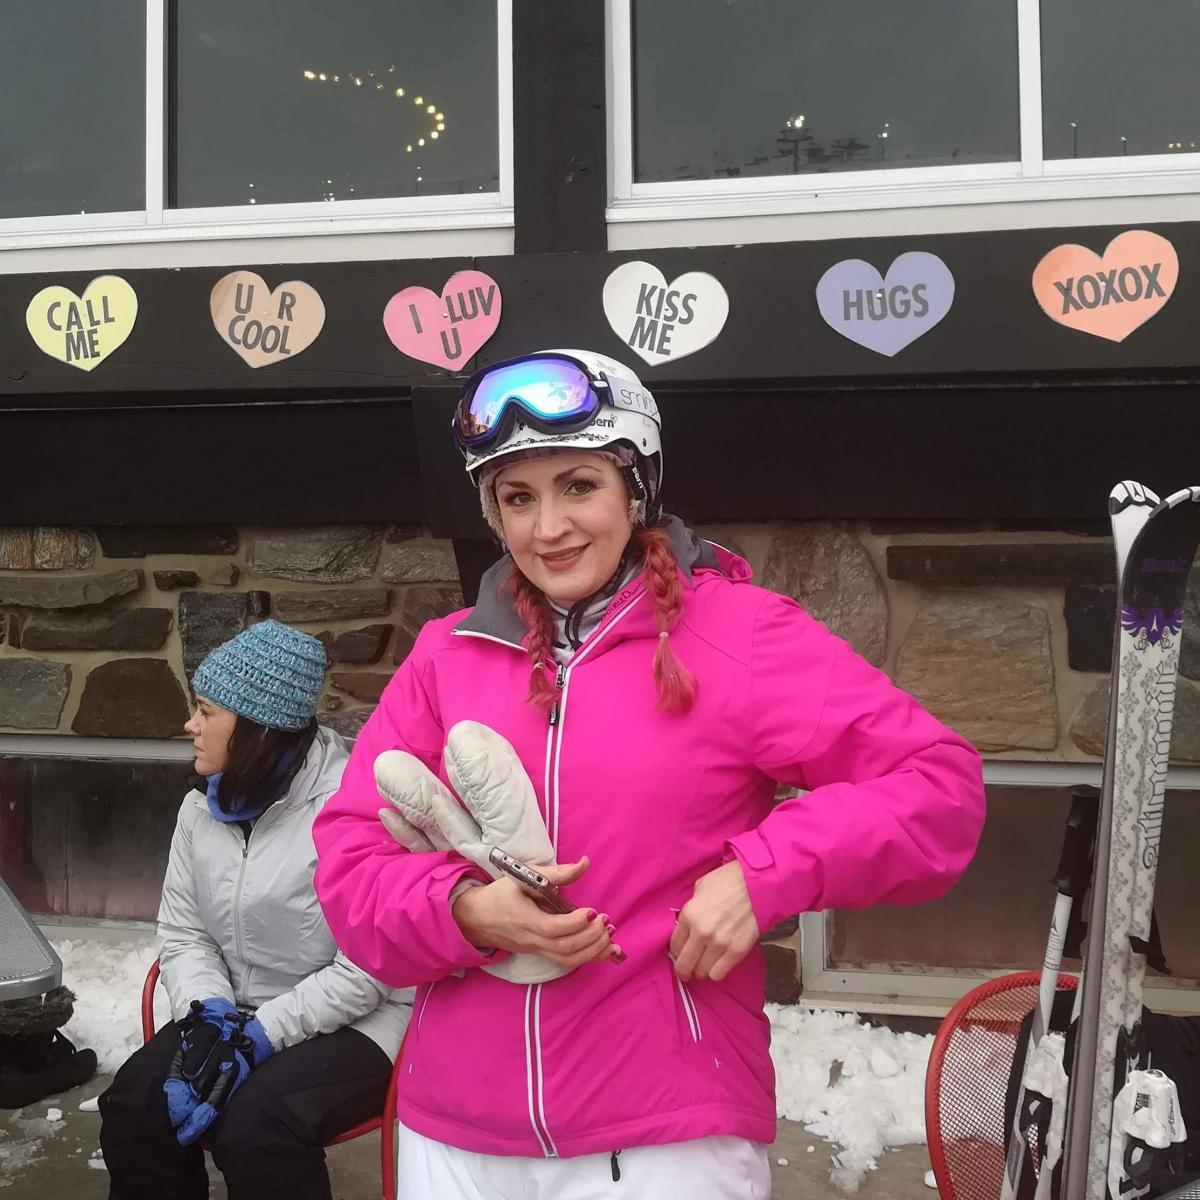 Michelle Kamke, 39, of Madison, Wis., participated in Wilmot Ski Resort's chairlift speed-dating event. It was a good opportunity, she said, to meet someone who also loved skiing.